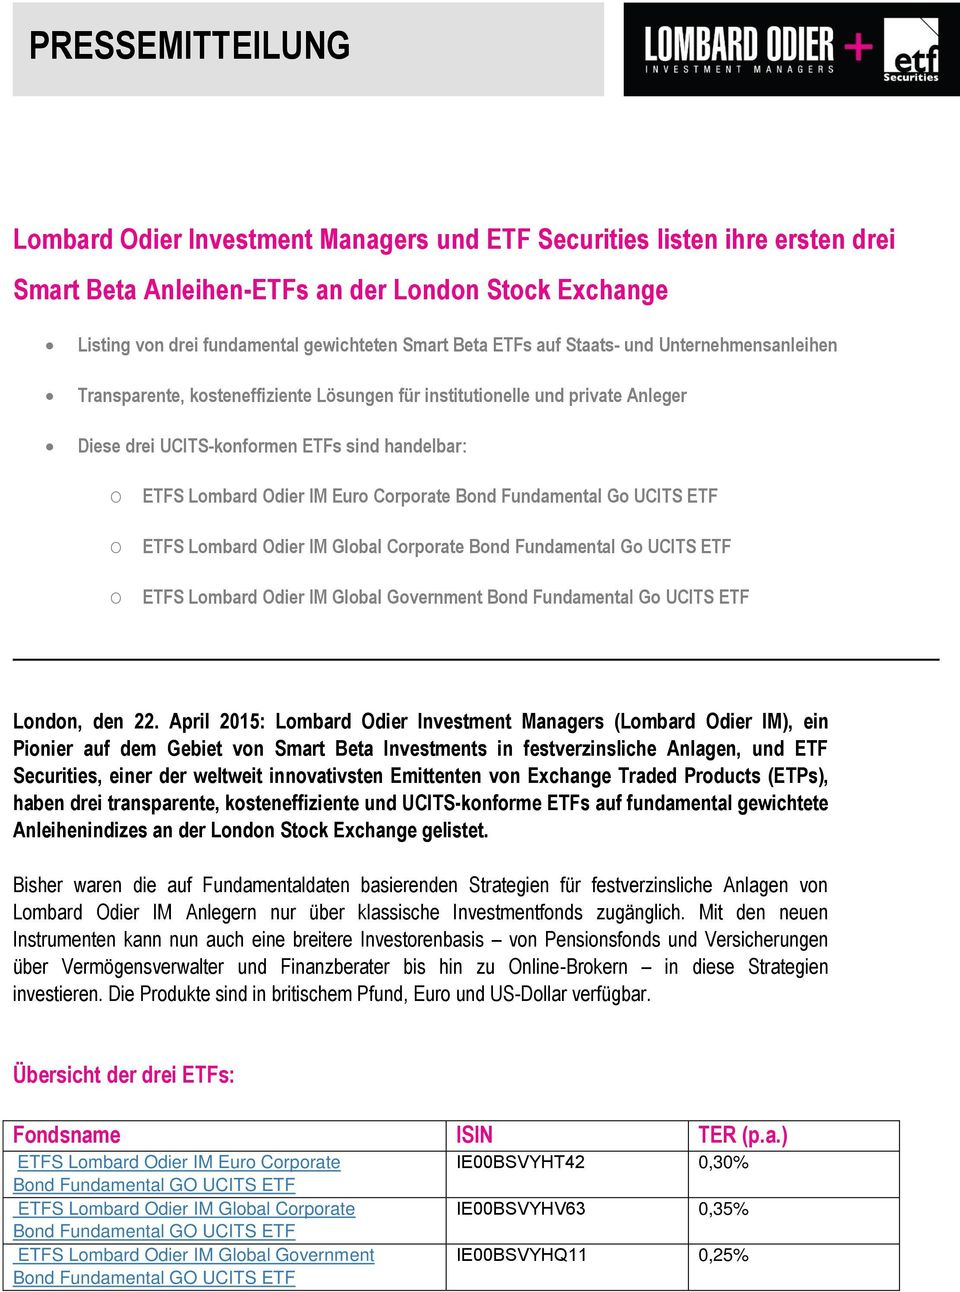 Euro Corporate Bond Fundamental Go UCITS ETF ETFS Lombard dier IM Global Corporate Bond Fundamental Go UCITS ETF ETFS Lombard dier IM Global Government Bond Fundamental Go UCITS ETF London, den 22.